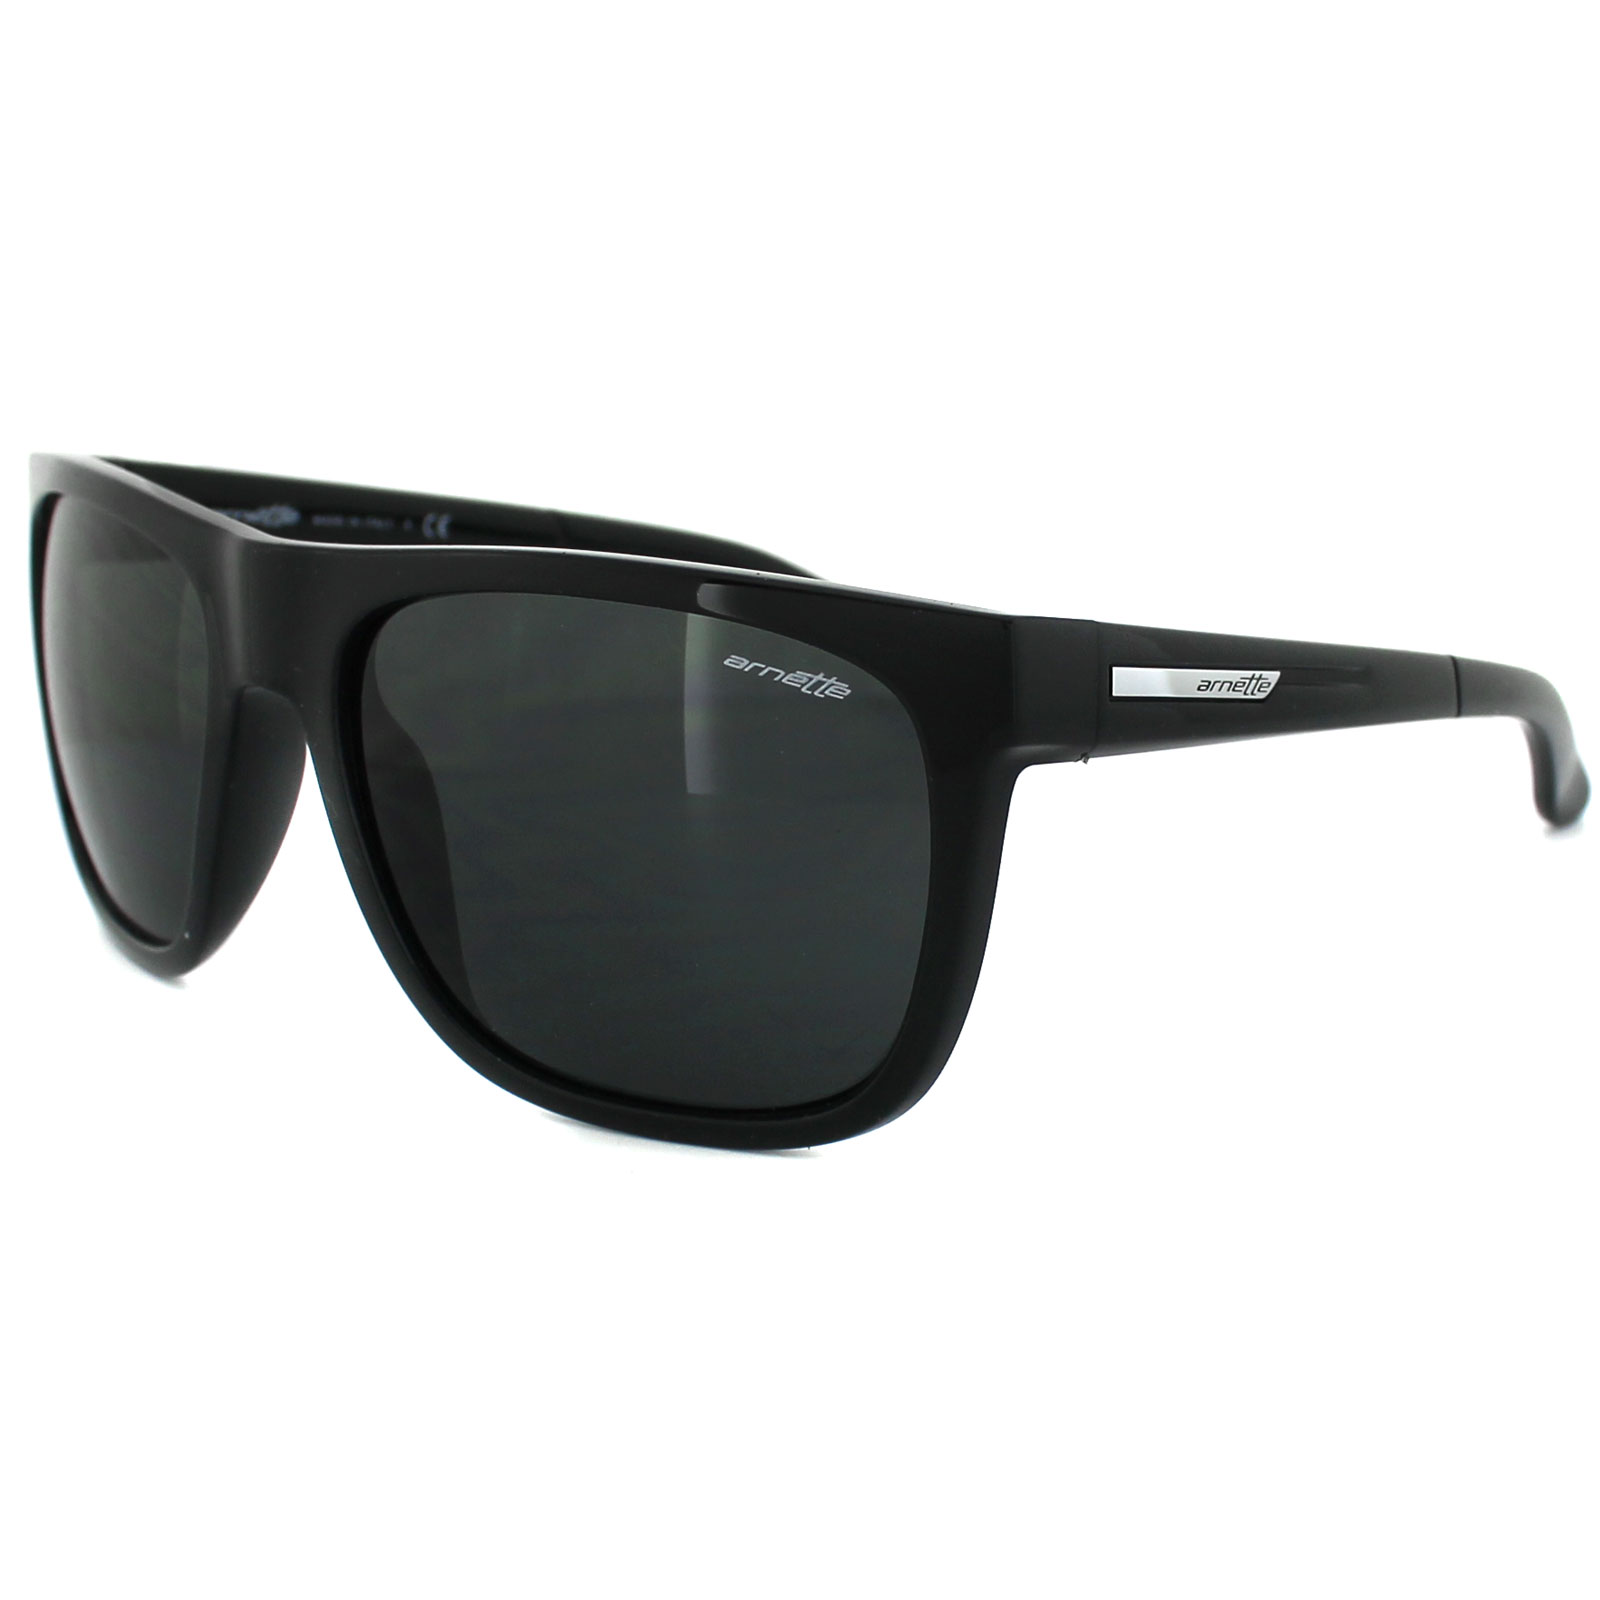 2952abdb83 Cheap Arnette 4143 Fire Drill Sunglasses - Discounted Sunglasses